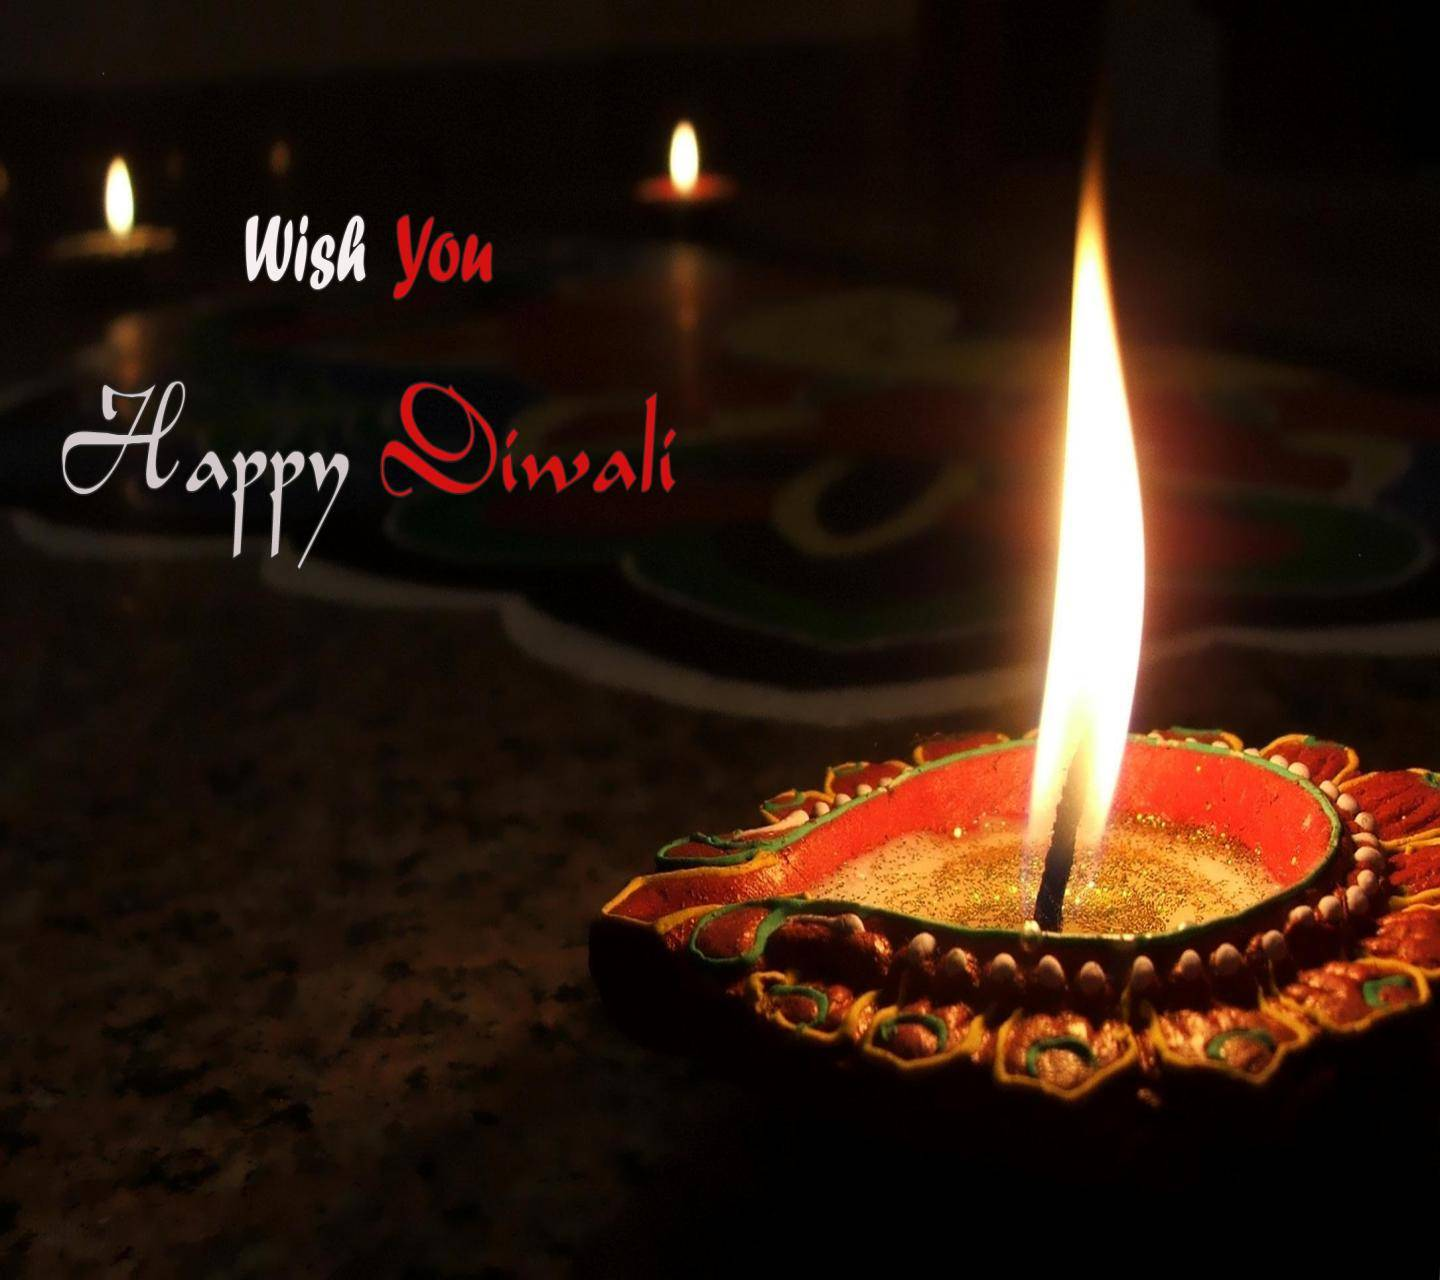 Download free diwali wallpapers for your mobile phone - most ... for Deepavali Candle Wallpaper  195sfw